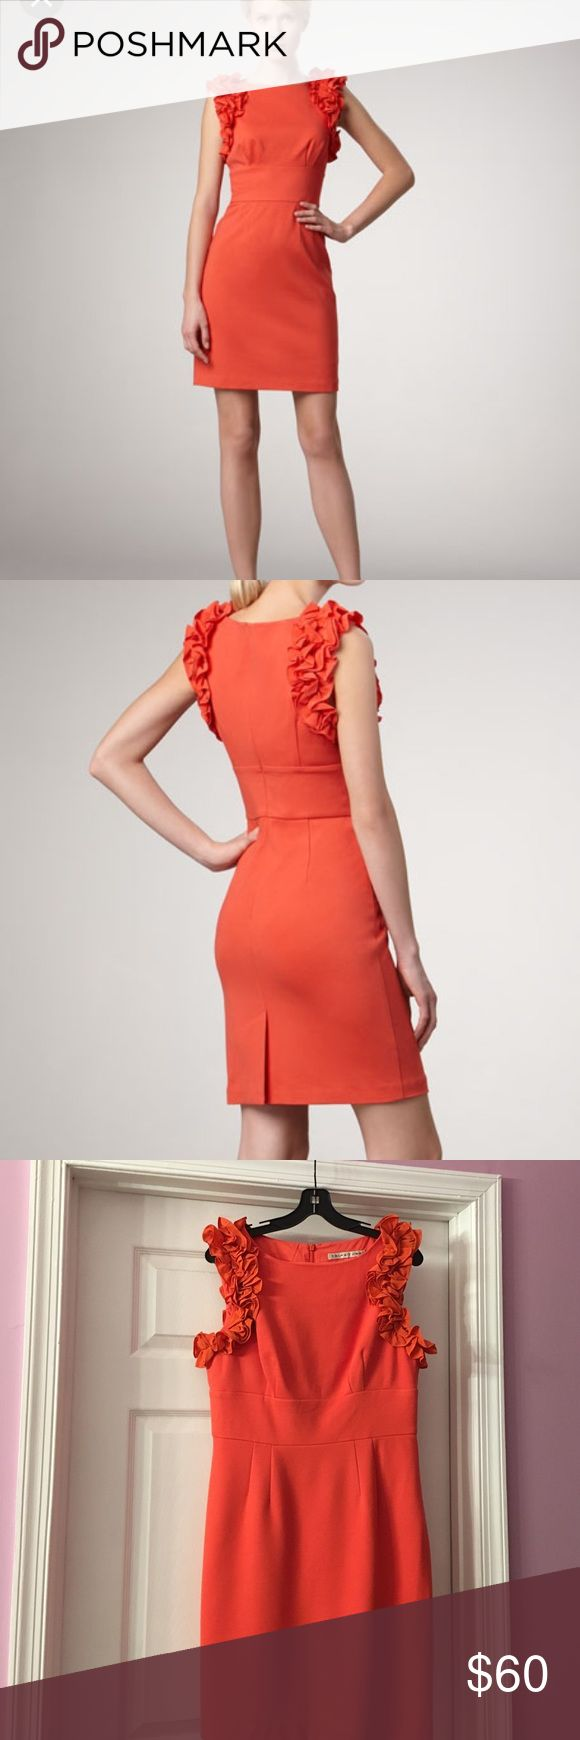 """Trina Turk dress Bright orange 🍊 Trina Turk Mina Ruffled Ponte dress.Perfect for Easter or any other spring or summer event.Stretchy material with silk ruffles ,fully lined,back zipper ,35"""" inches long,waist 16"""".Great like new condition. Trina Turk Dresses Mini"""